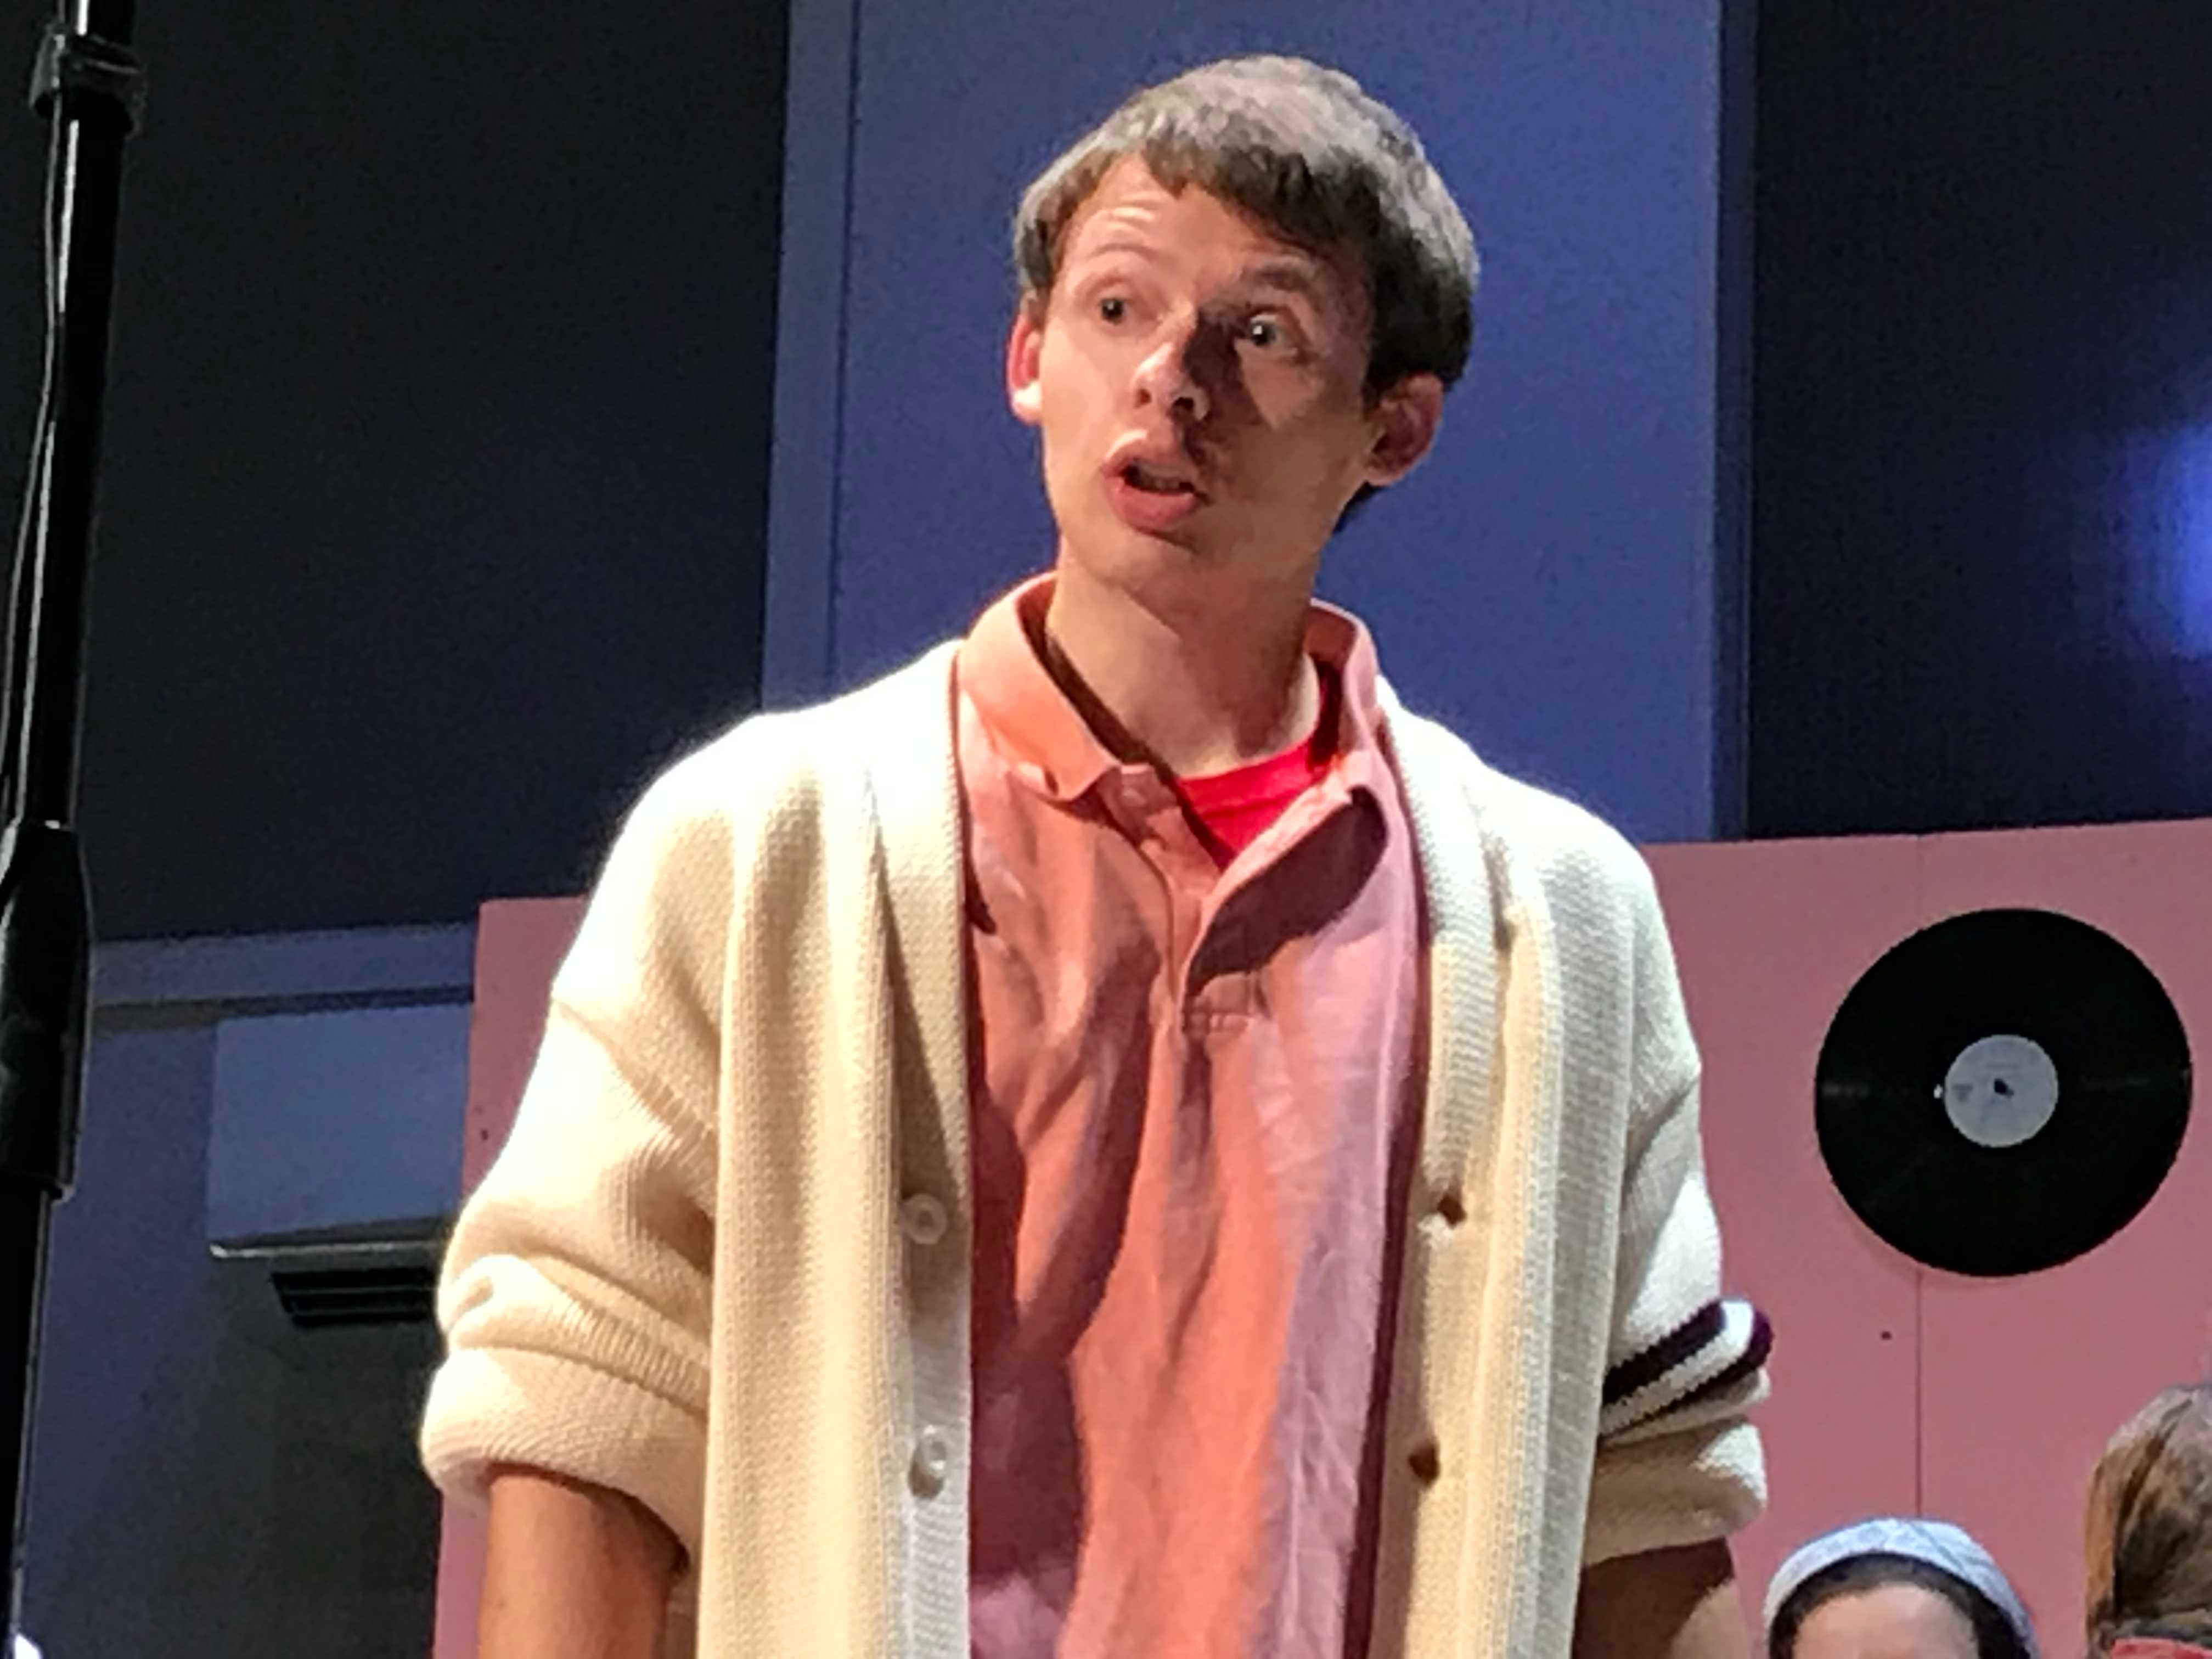 """Cumberland Valley Christian School sophomore Thomas McVey portrays """"Jim Shorts"""" in """"Murder at the Malt Shop"""" during a dress rehearsal on Friday afternoon. The public is invited to see the play at 7 p.m. tonight at the Open Door Church, which is located in the Cumberland Valley Christian School complex, at 600 Miller St., Chambersburg."""